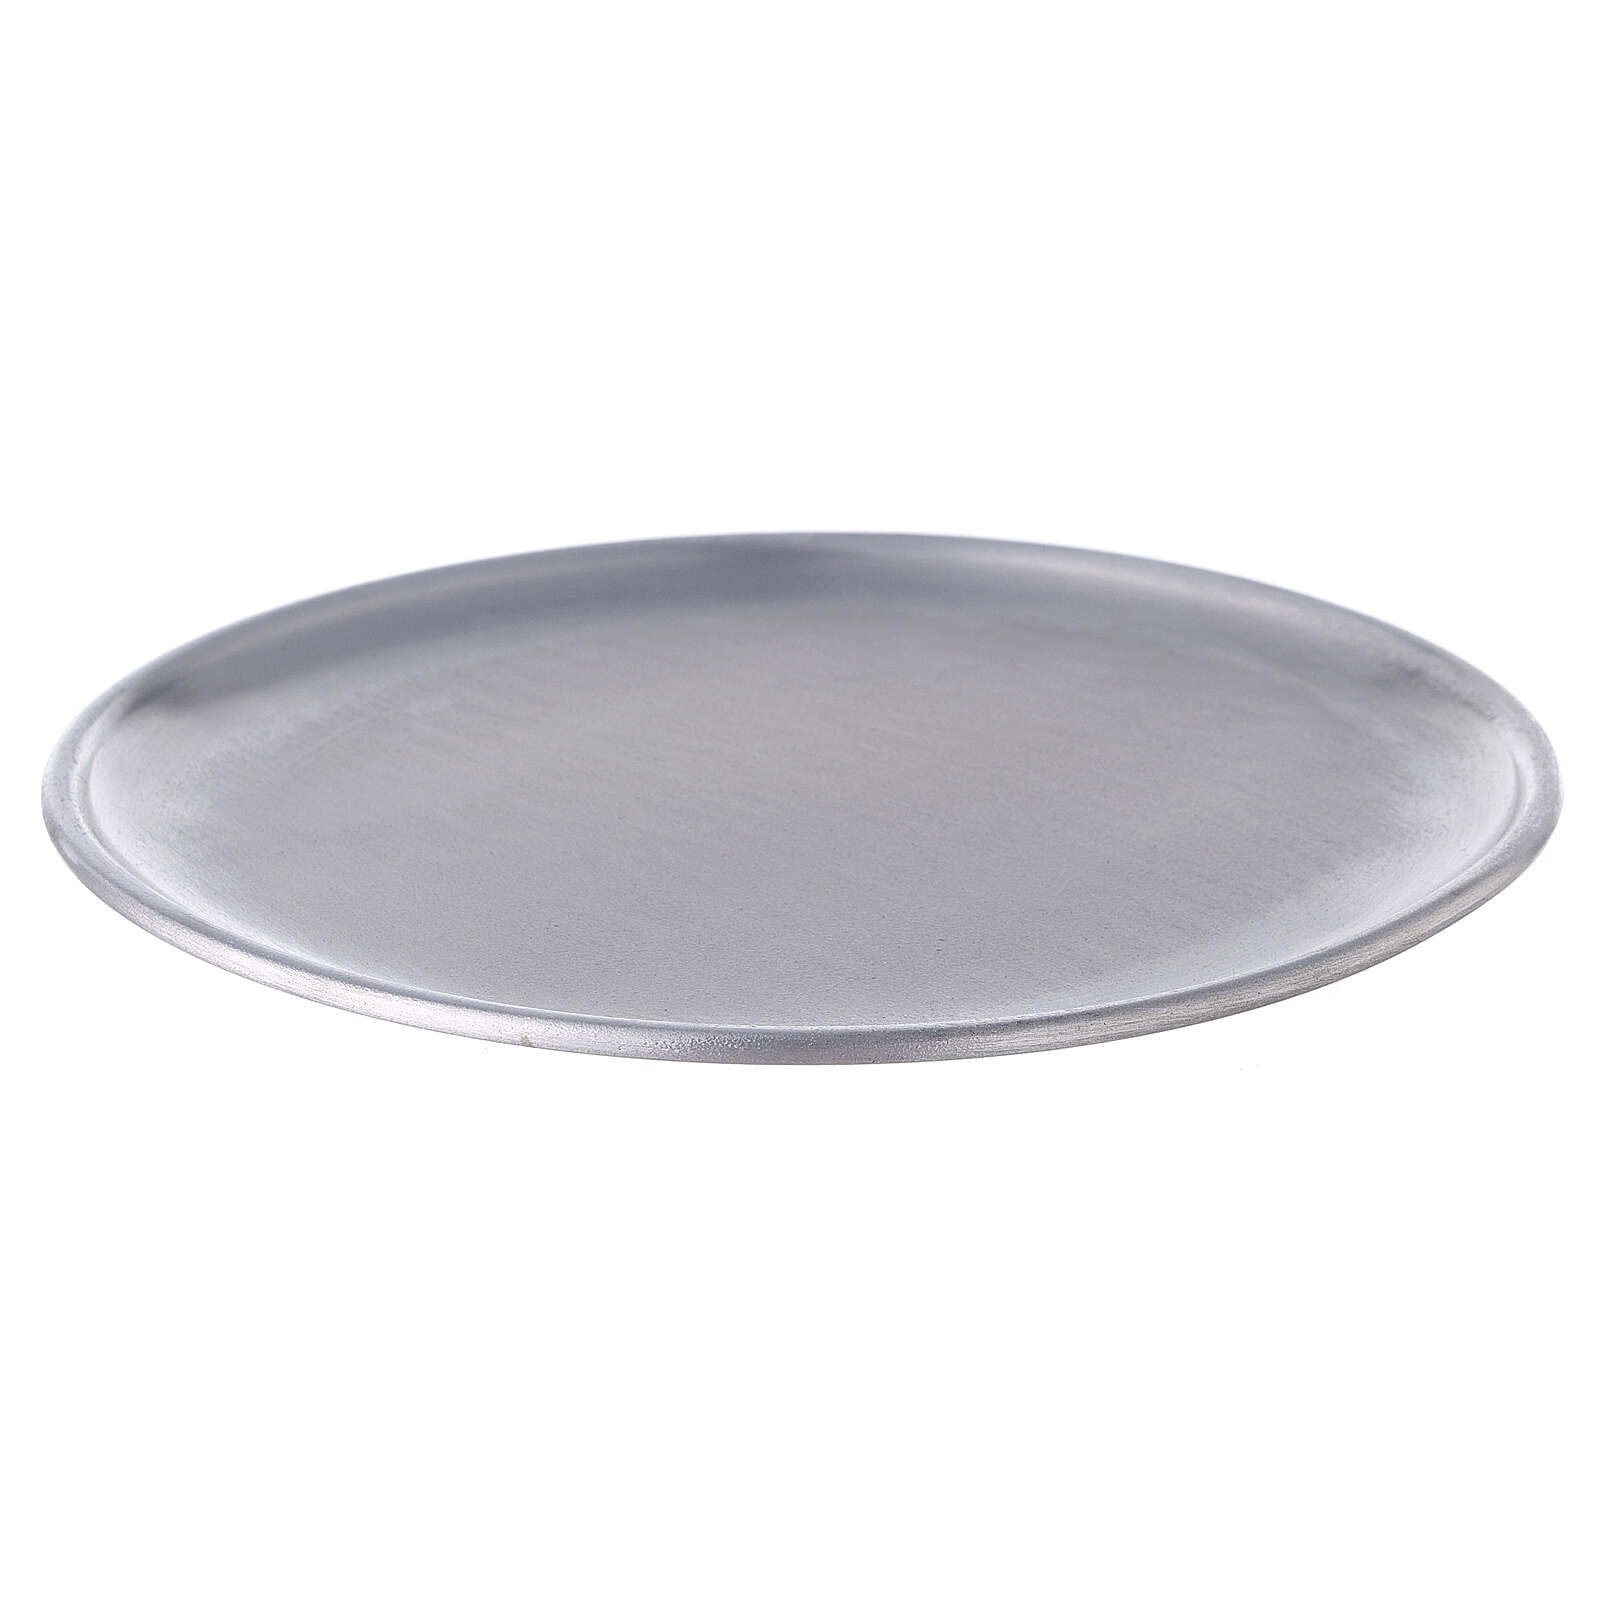 Aluminium candle holder plate with feet 6 3/4 in 3